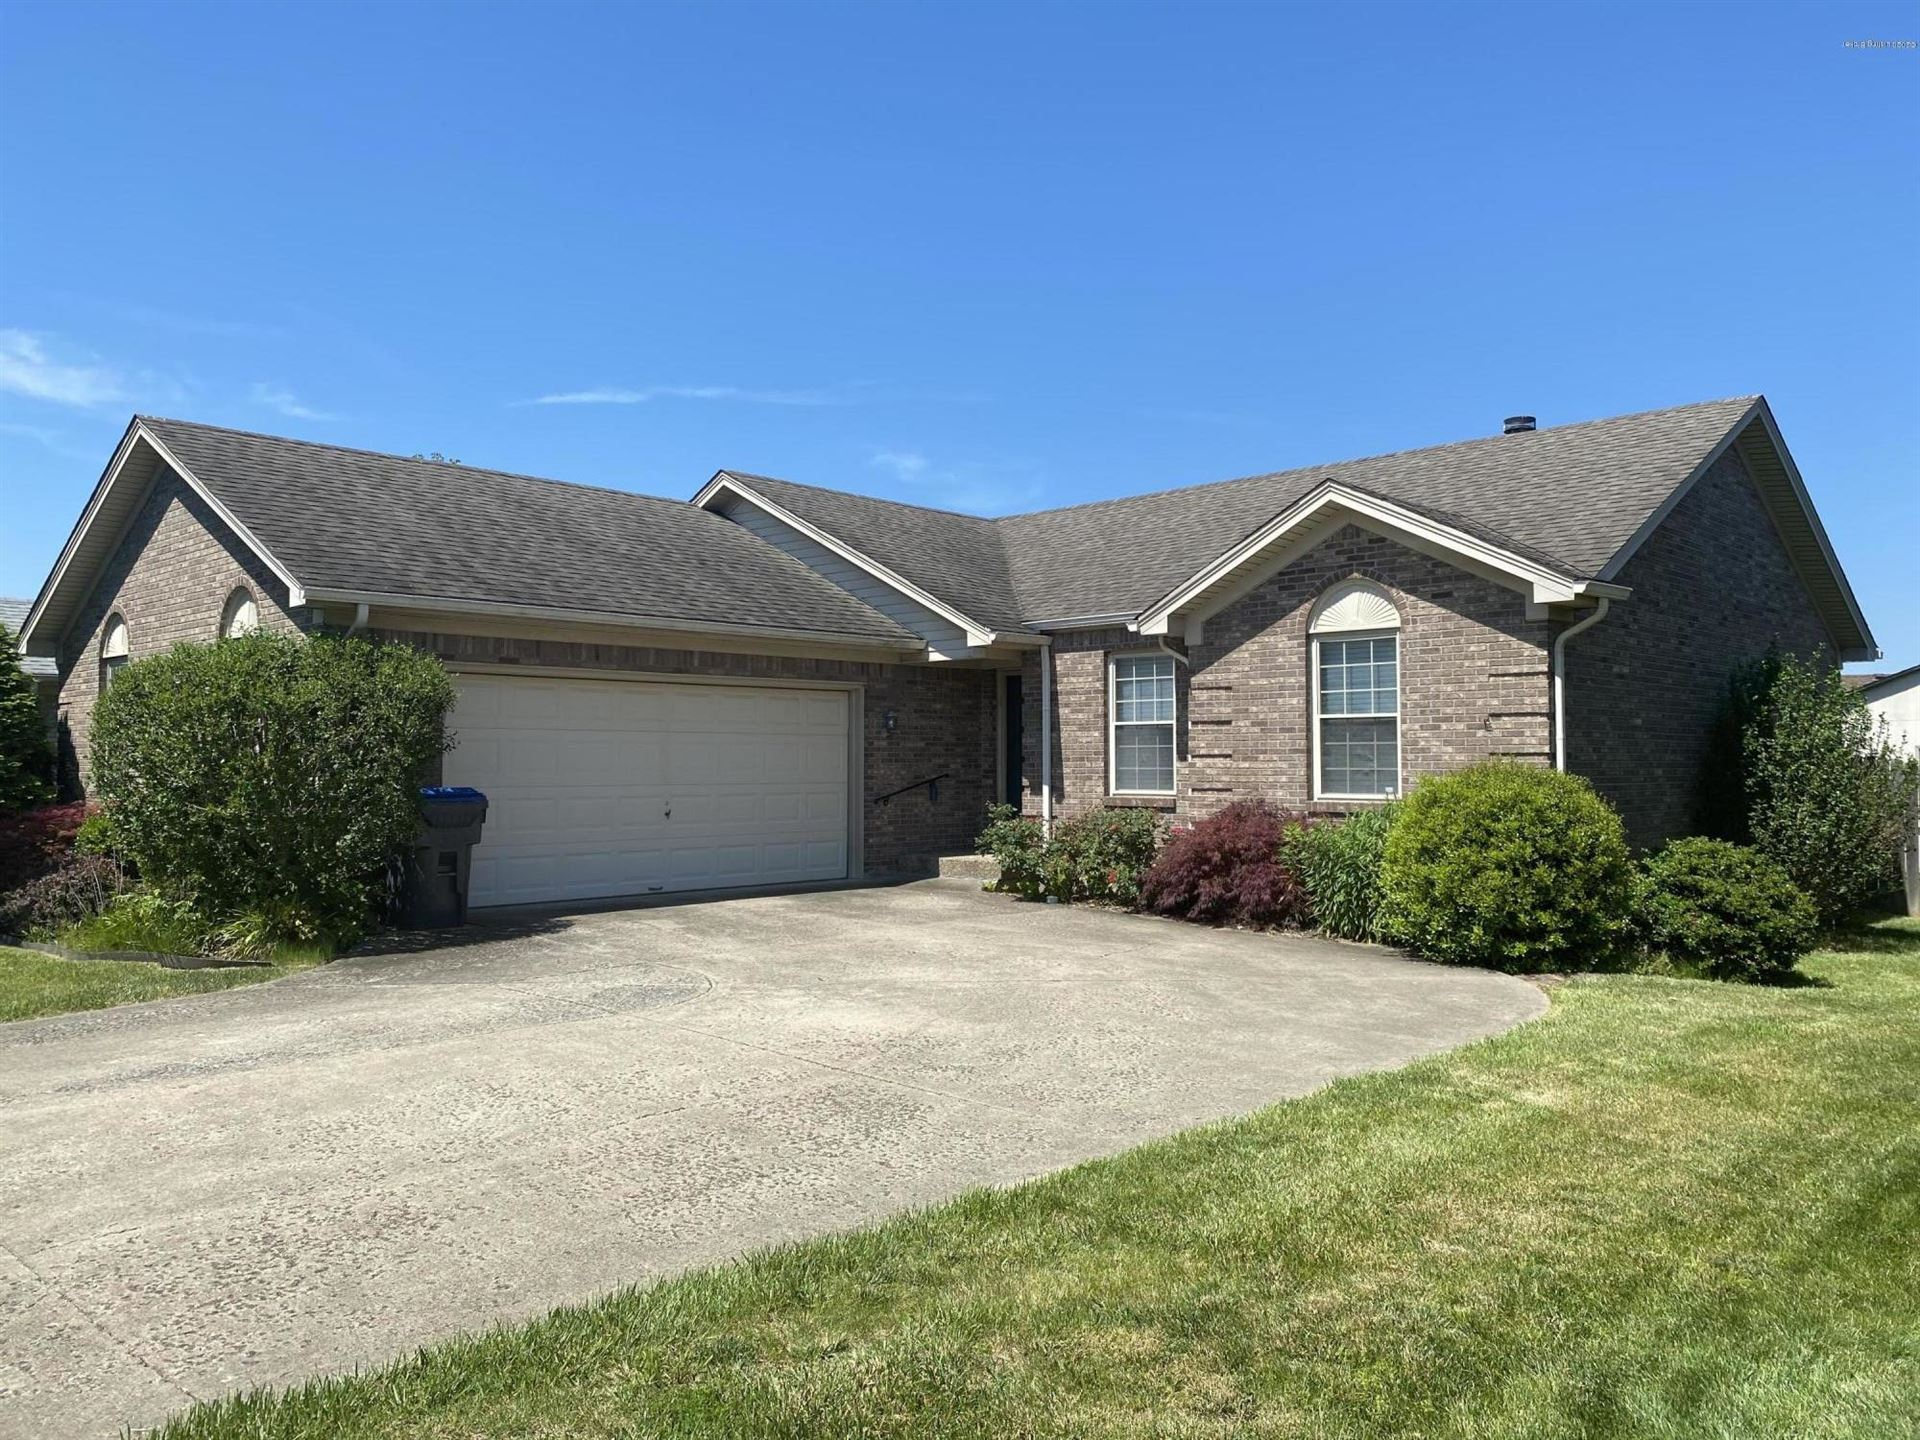 Property Image Of 11314 Ashbrooke Gardens Dr In Louisville, Ky